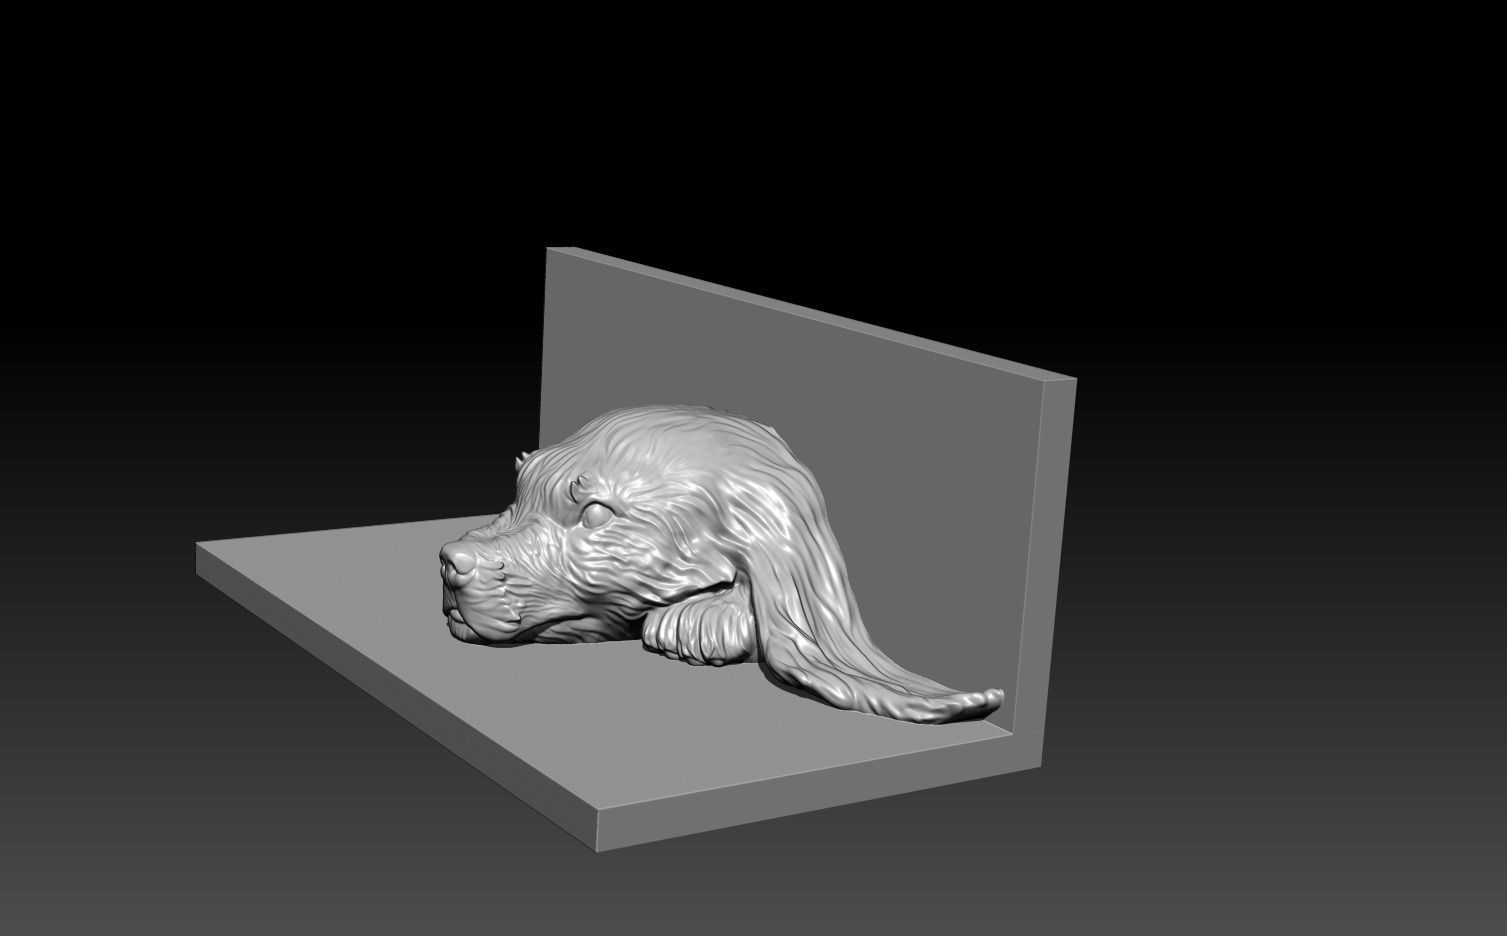 Dog 3d model free 3d model 3d printable obj 3d printer models free